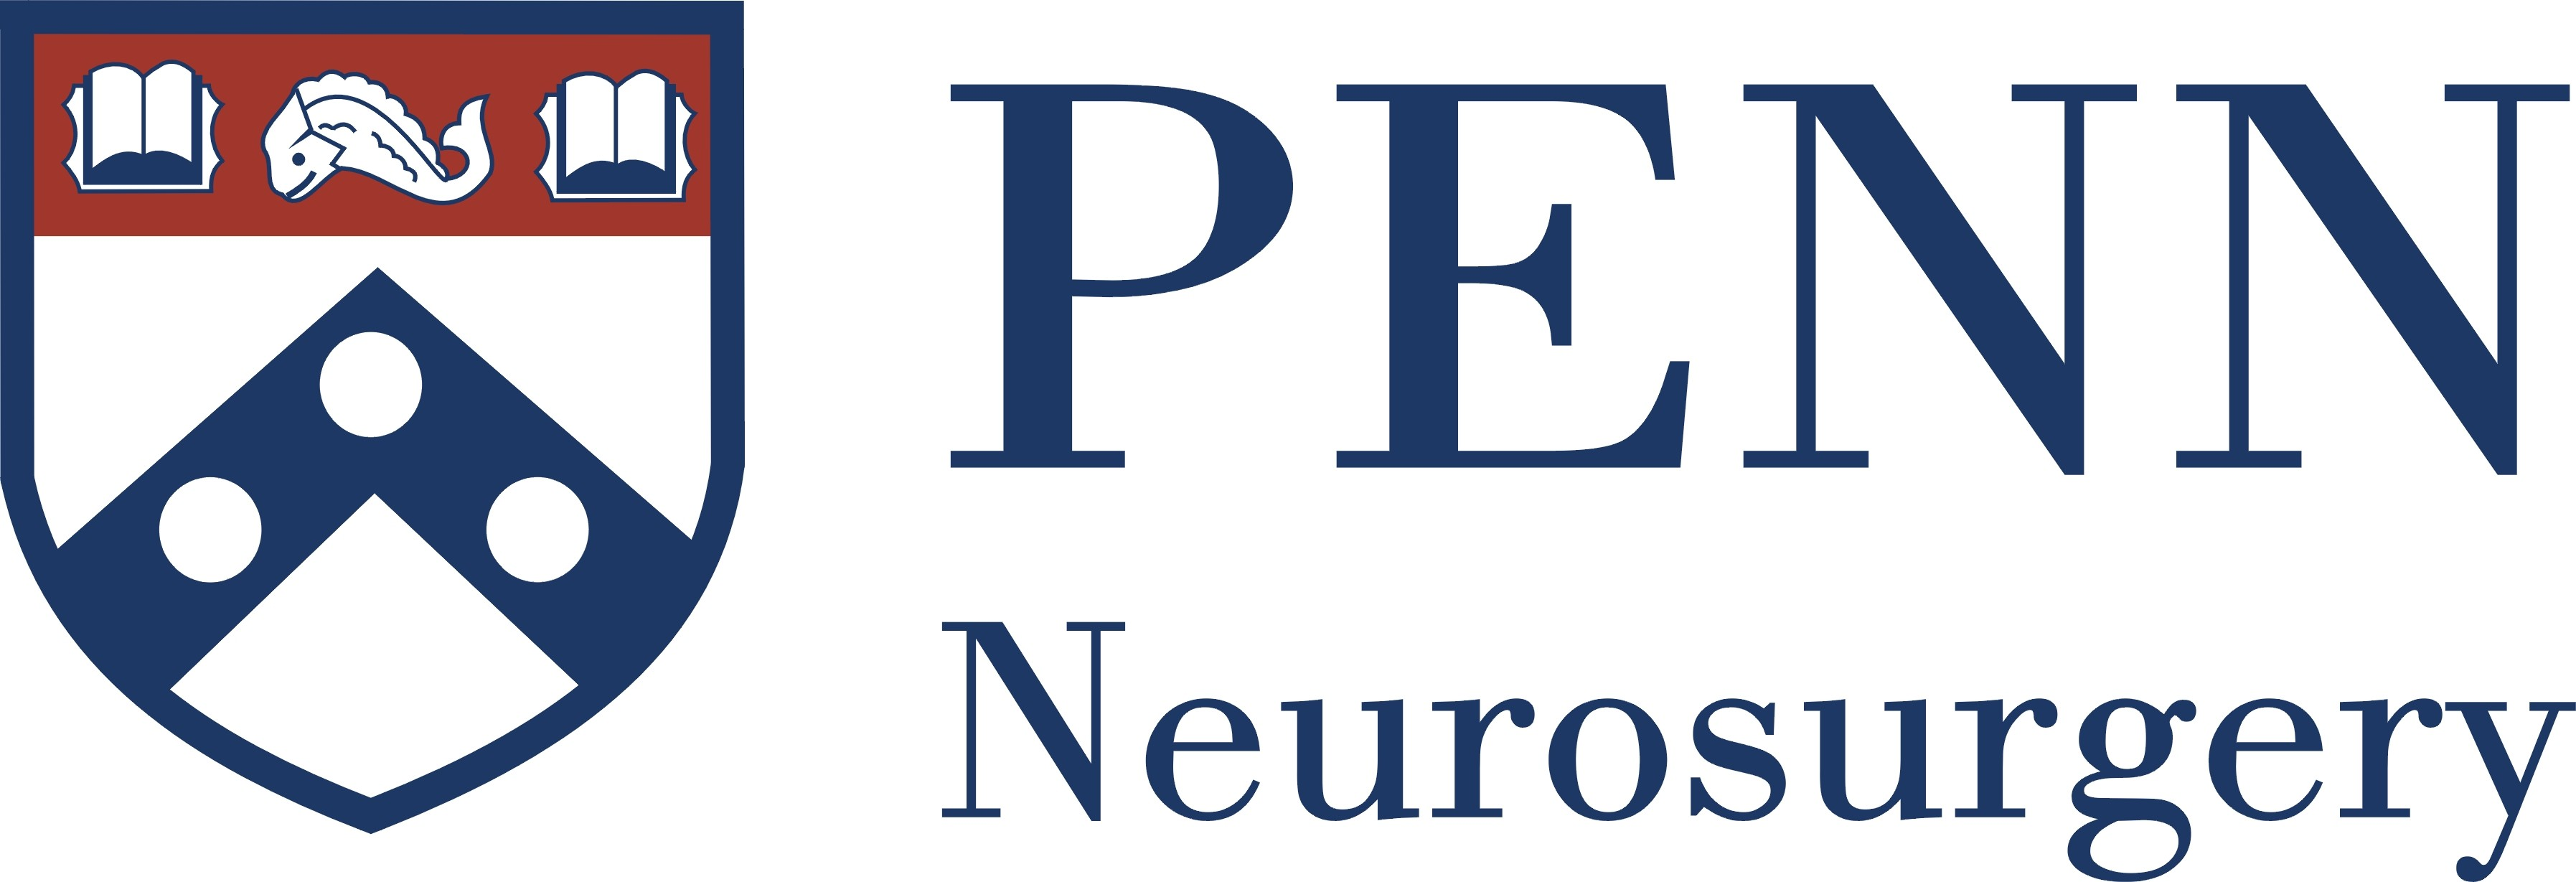 University of Pennsylvania Department of Neurosurgery